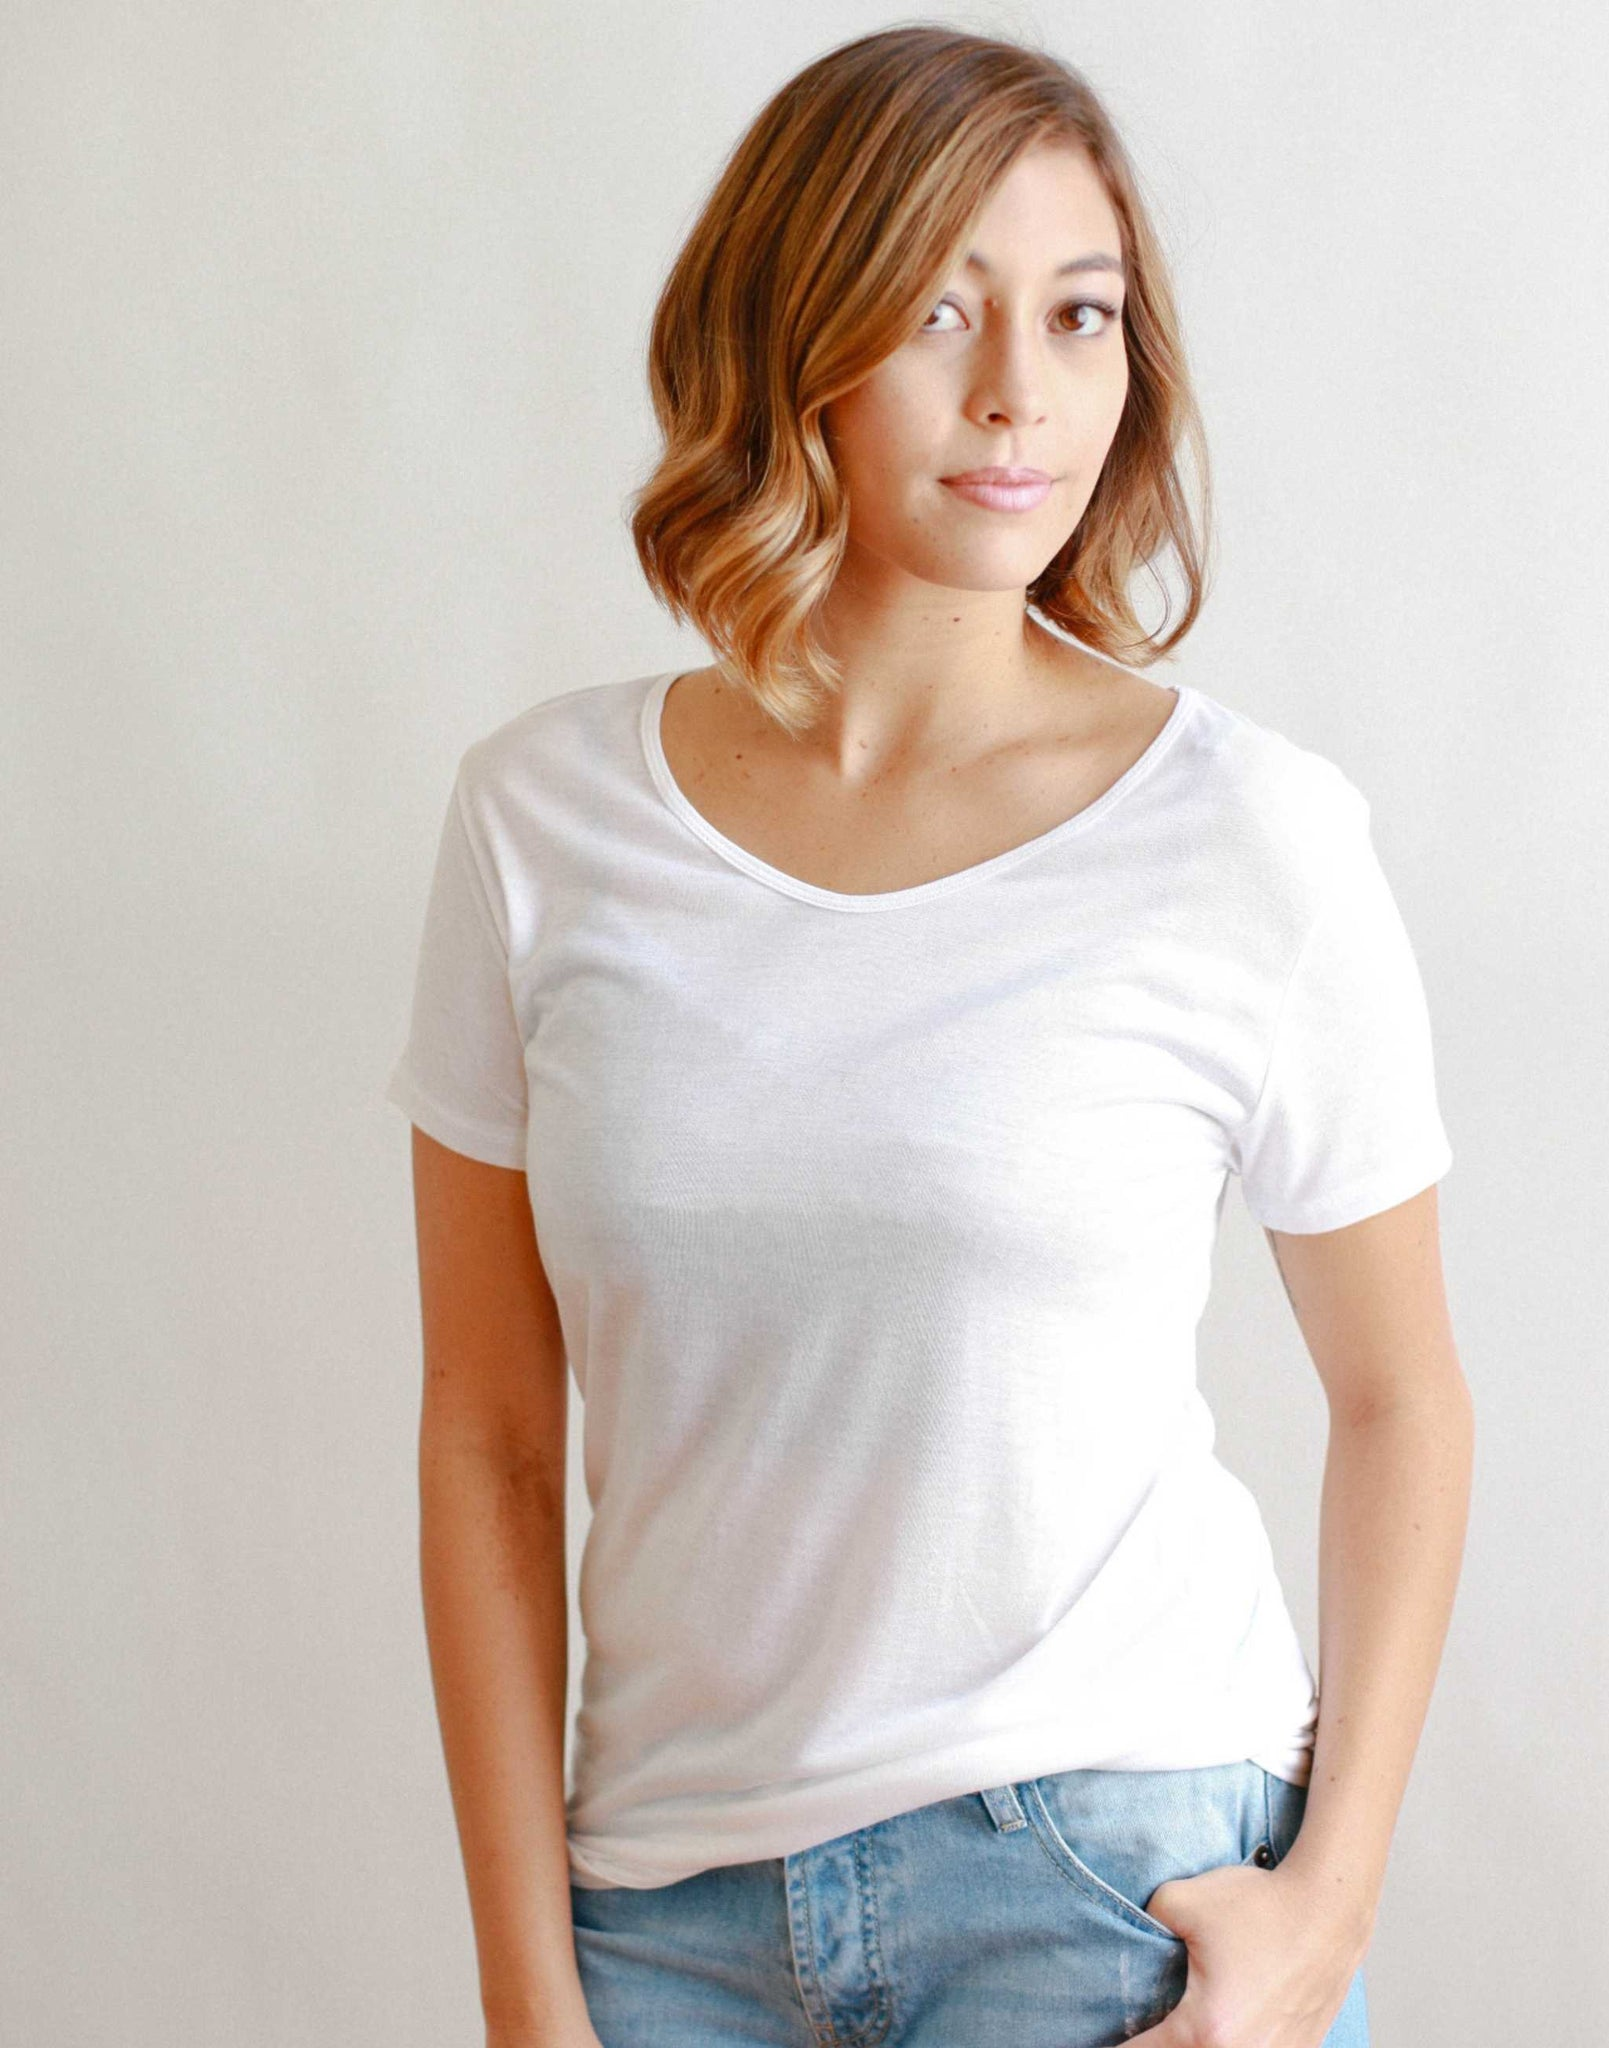 Sample Sale- Women's Slouchy Tee, White, Small/Medium